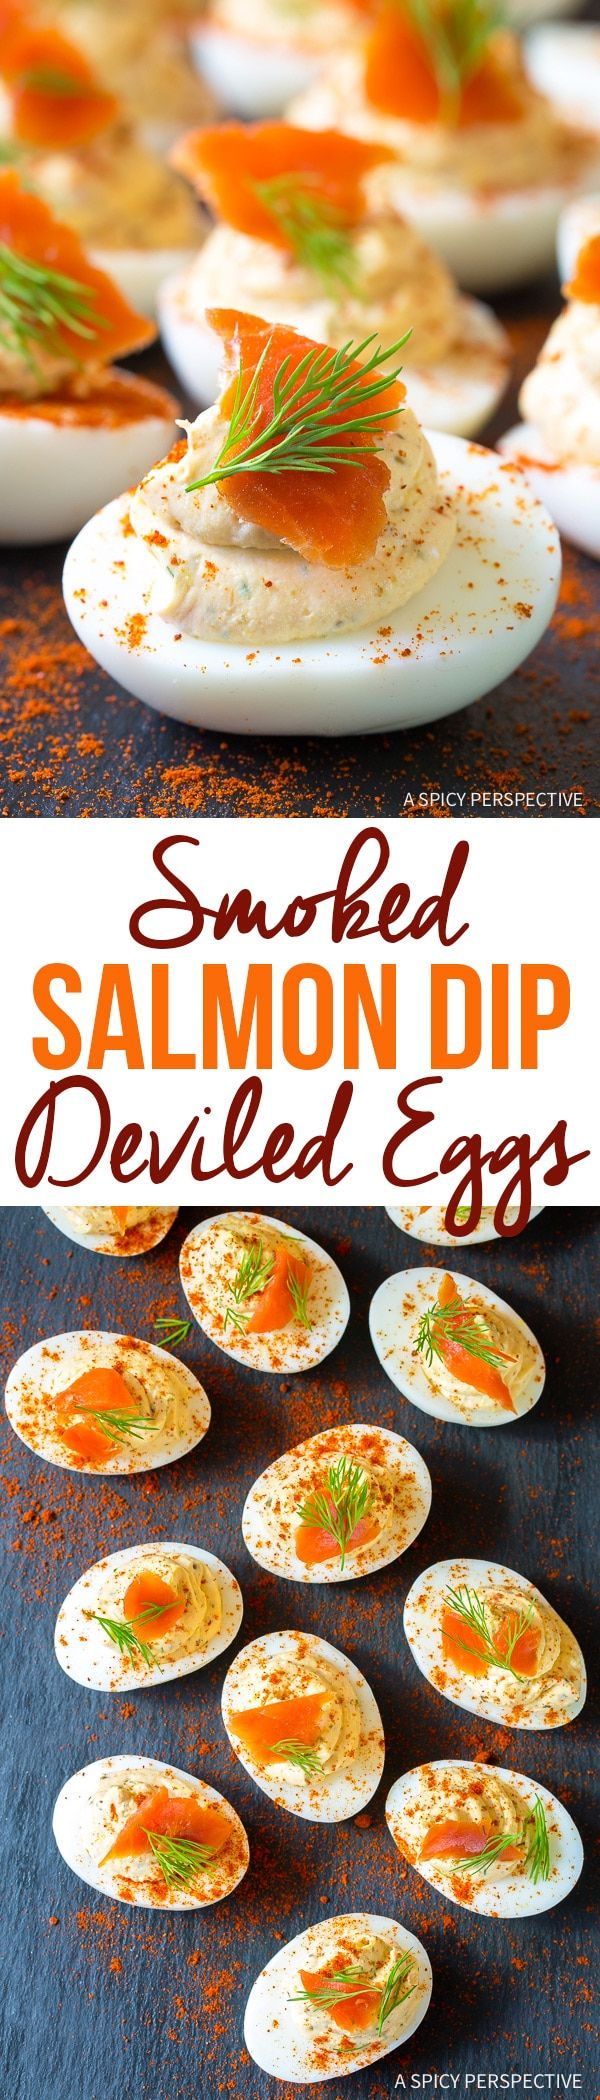 Smoked Salmon Dip Deviled Eggs Recipe - A simple recipe combining the appeal of creamy smoked salmon dip and classic deviled eggs! via @spicyperspectiv